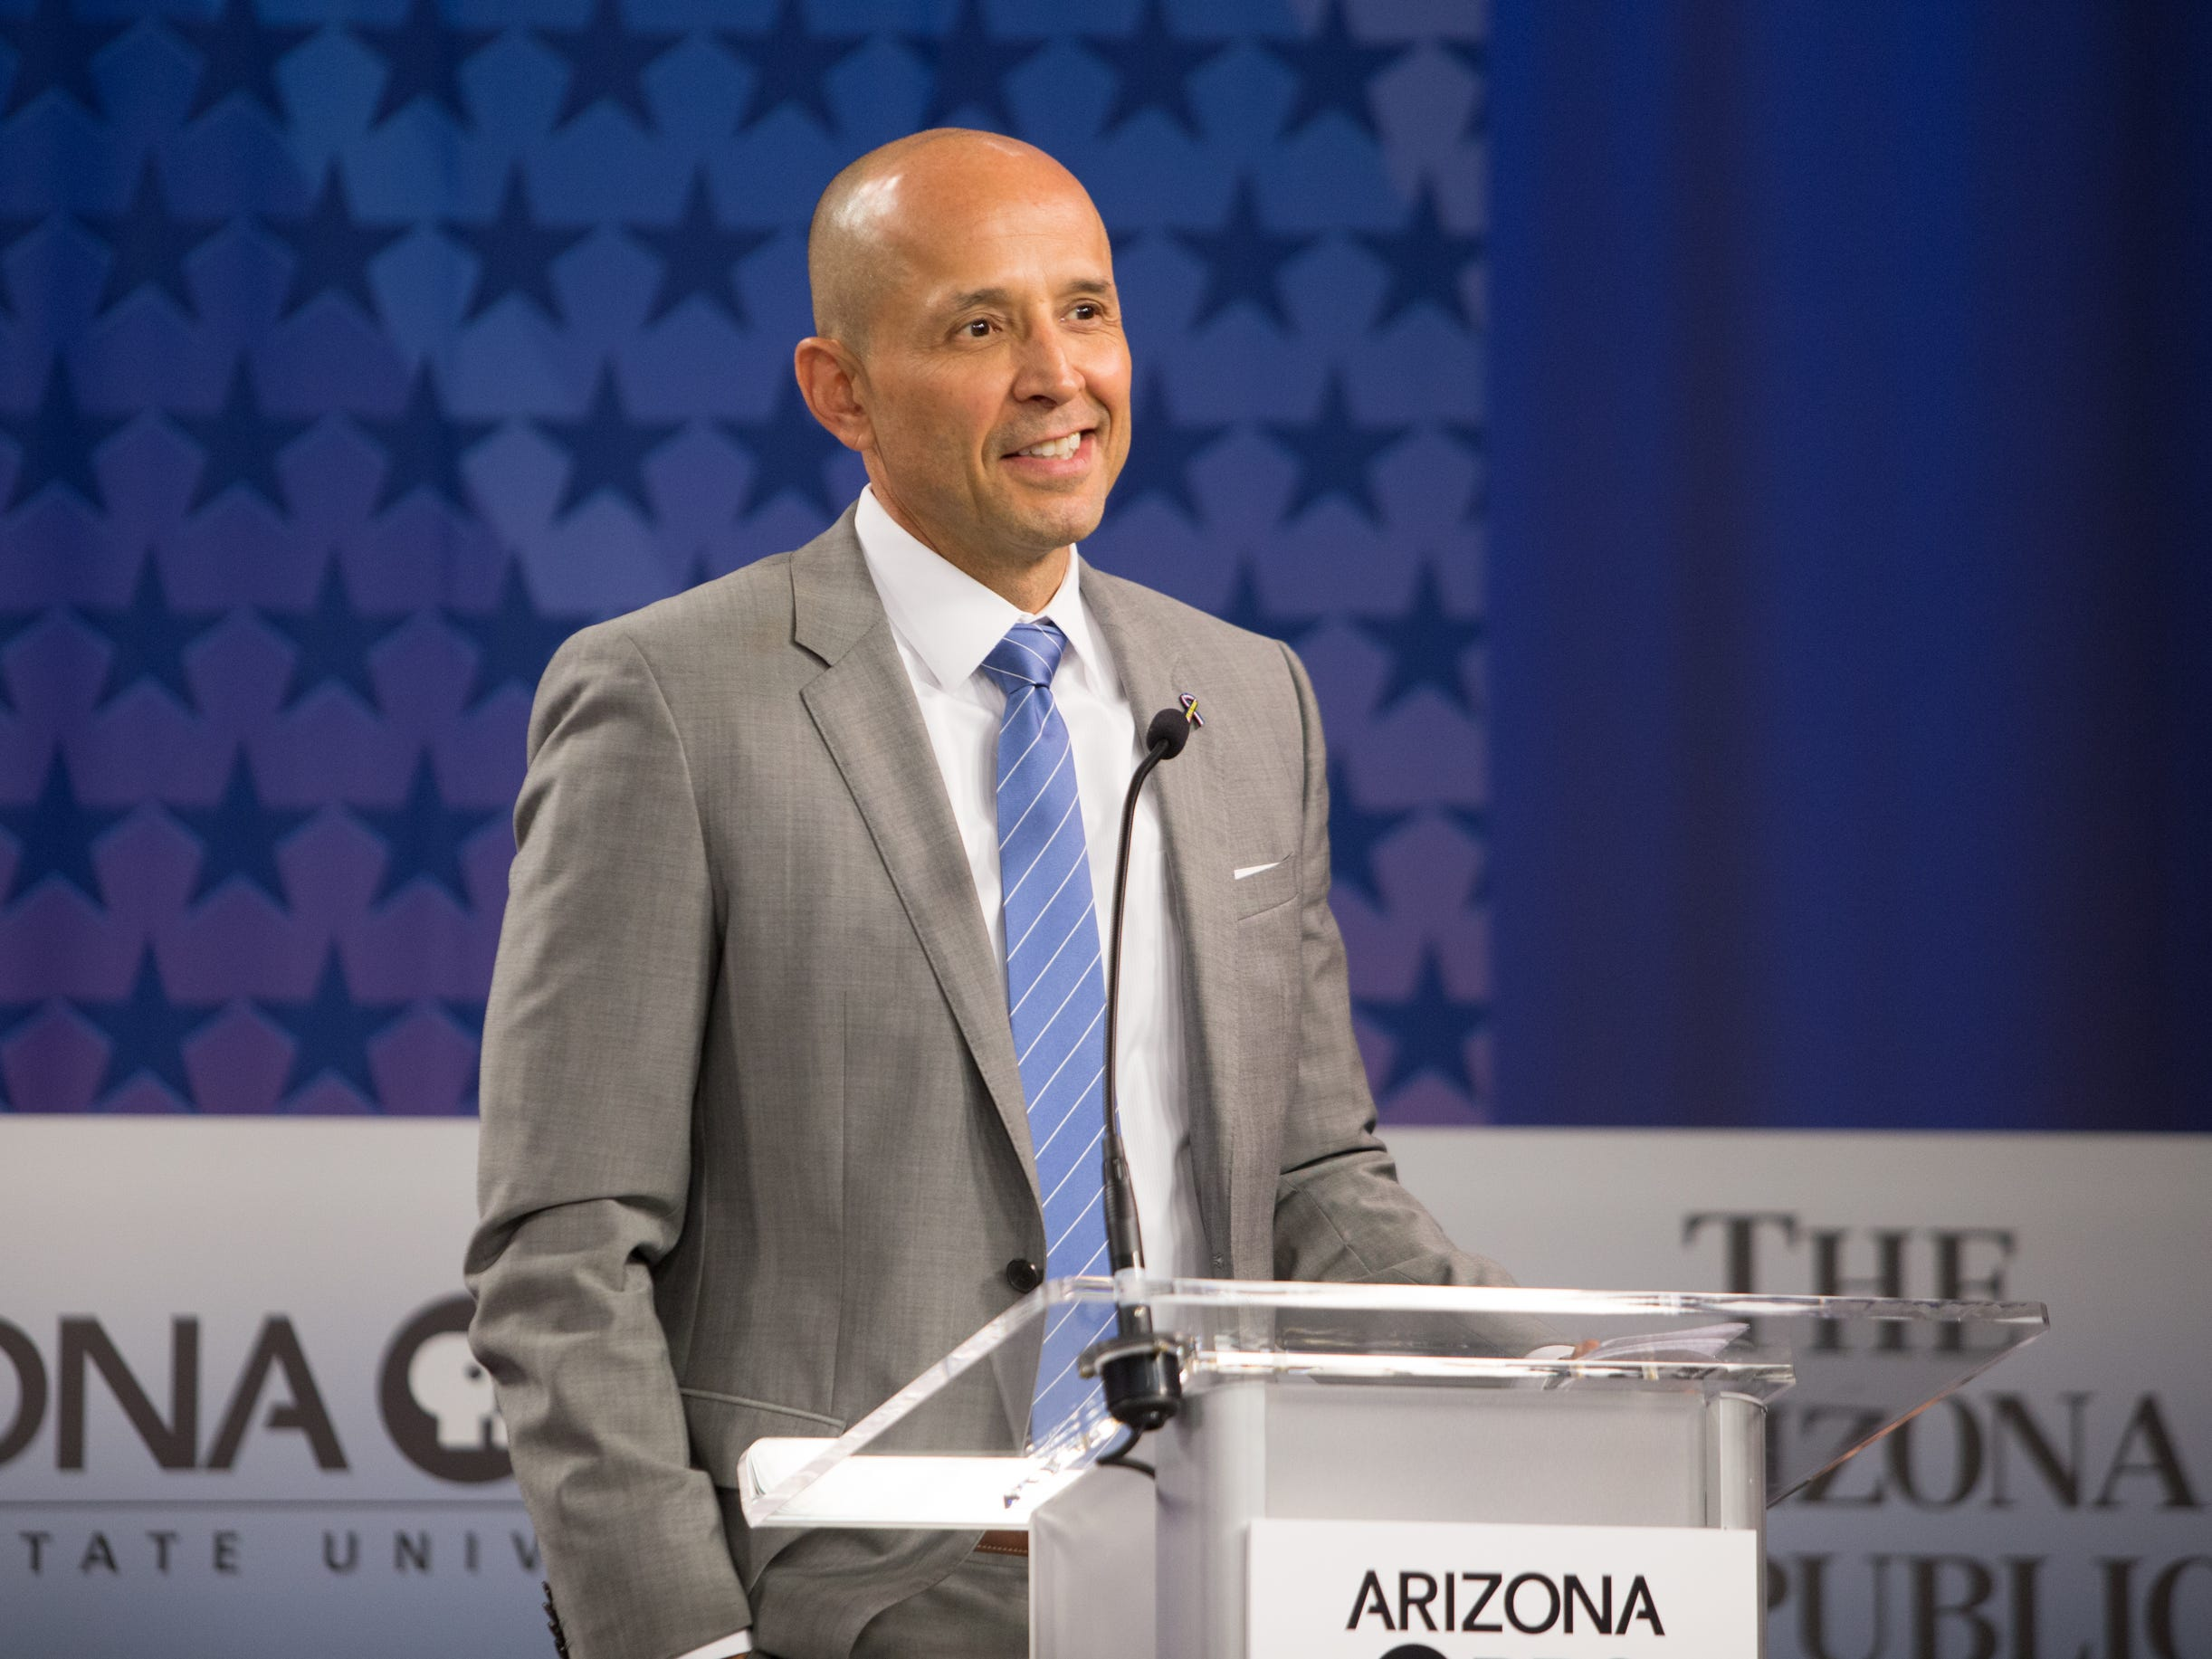 Gubernatorial candidate David Garcia on July 31, 2018, during a debate among Democrats vying for Arizona governor at Arizona State University's Walter Cronkite School of Journalism in Phoenix, Arizona.